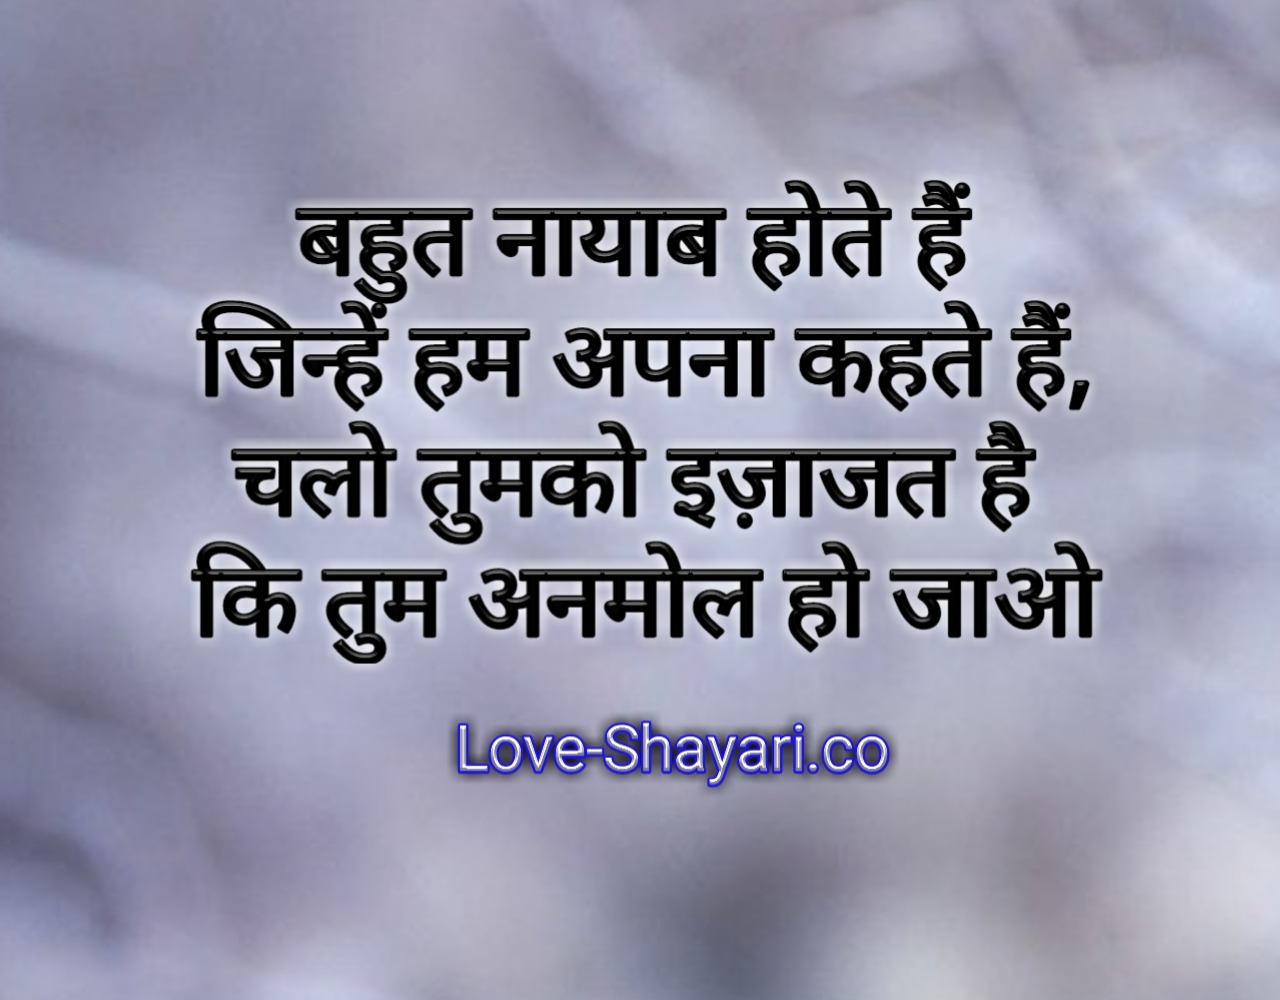 Love Shayari for Life partner